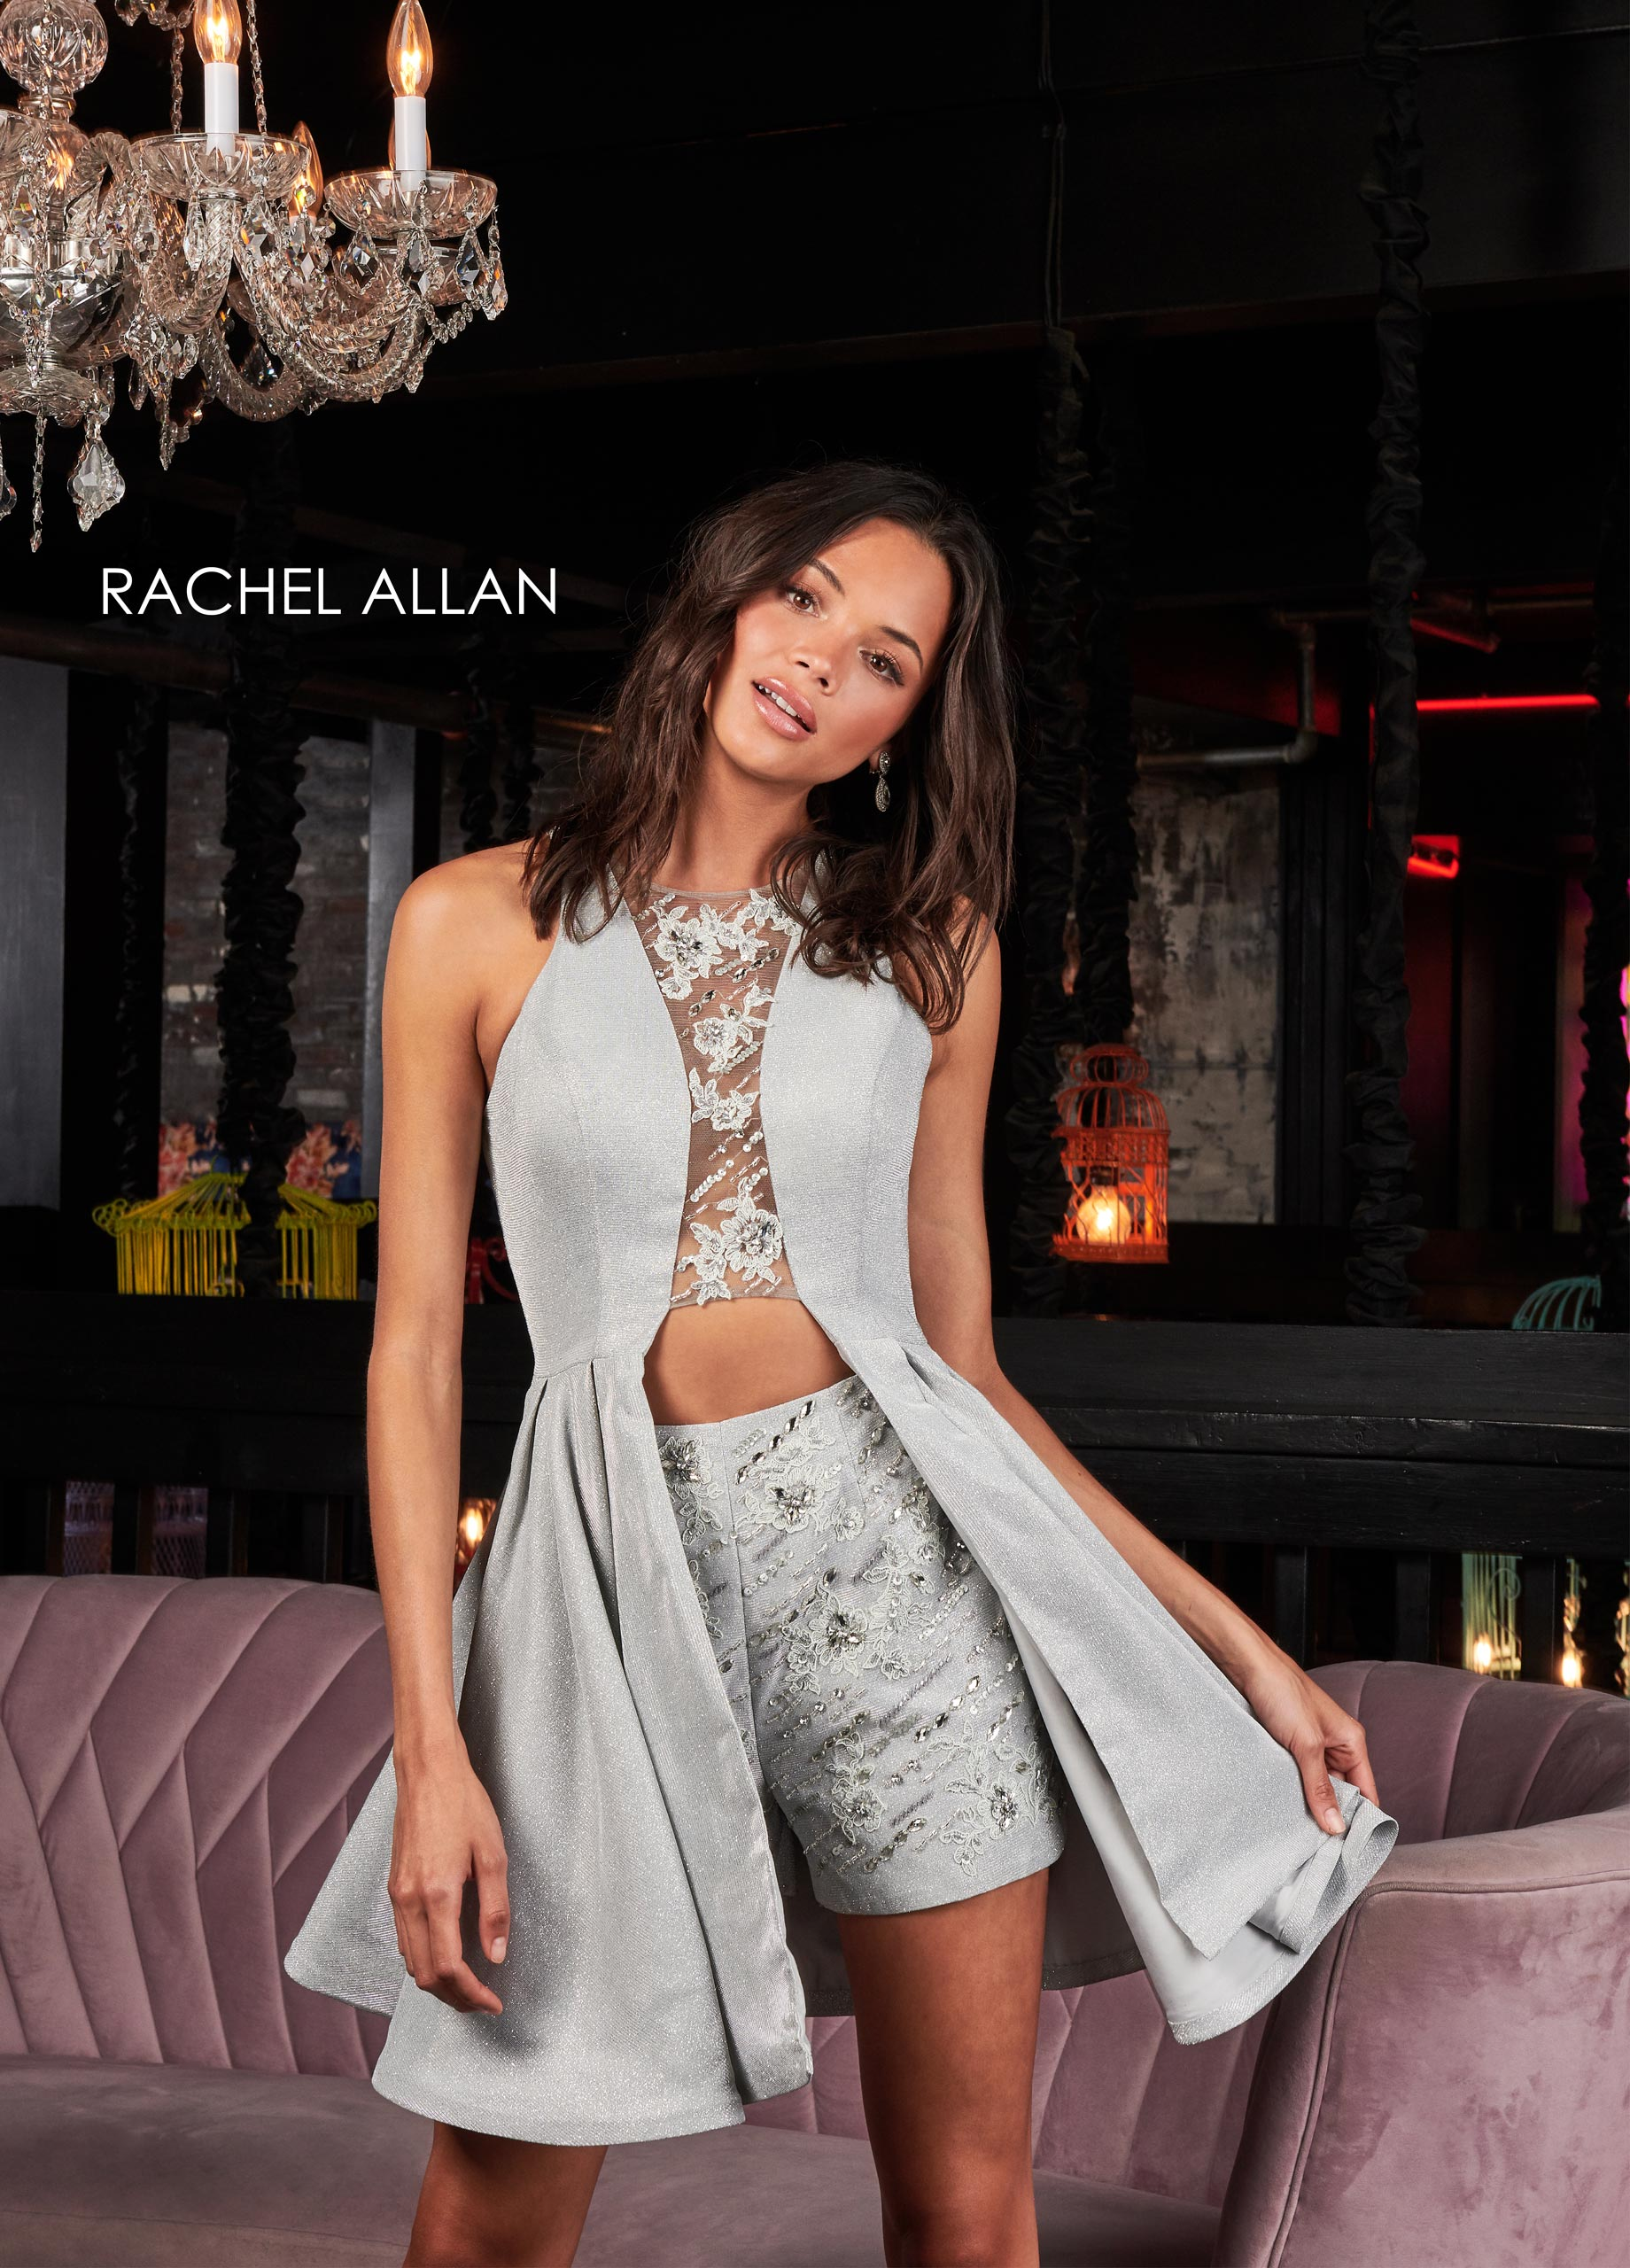 Scoop Neck Shorts With Overlay Homecoming Dresses in Silver/gunmetal Color